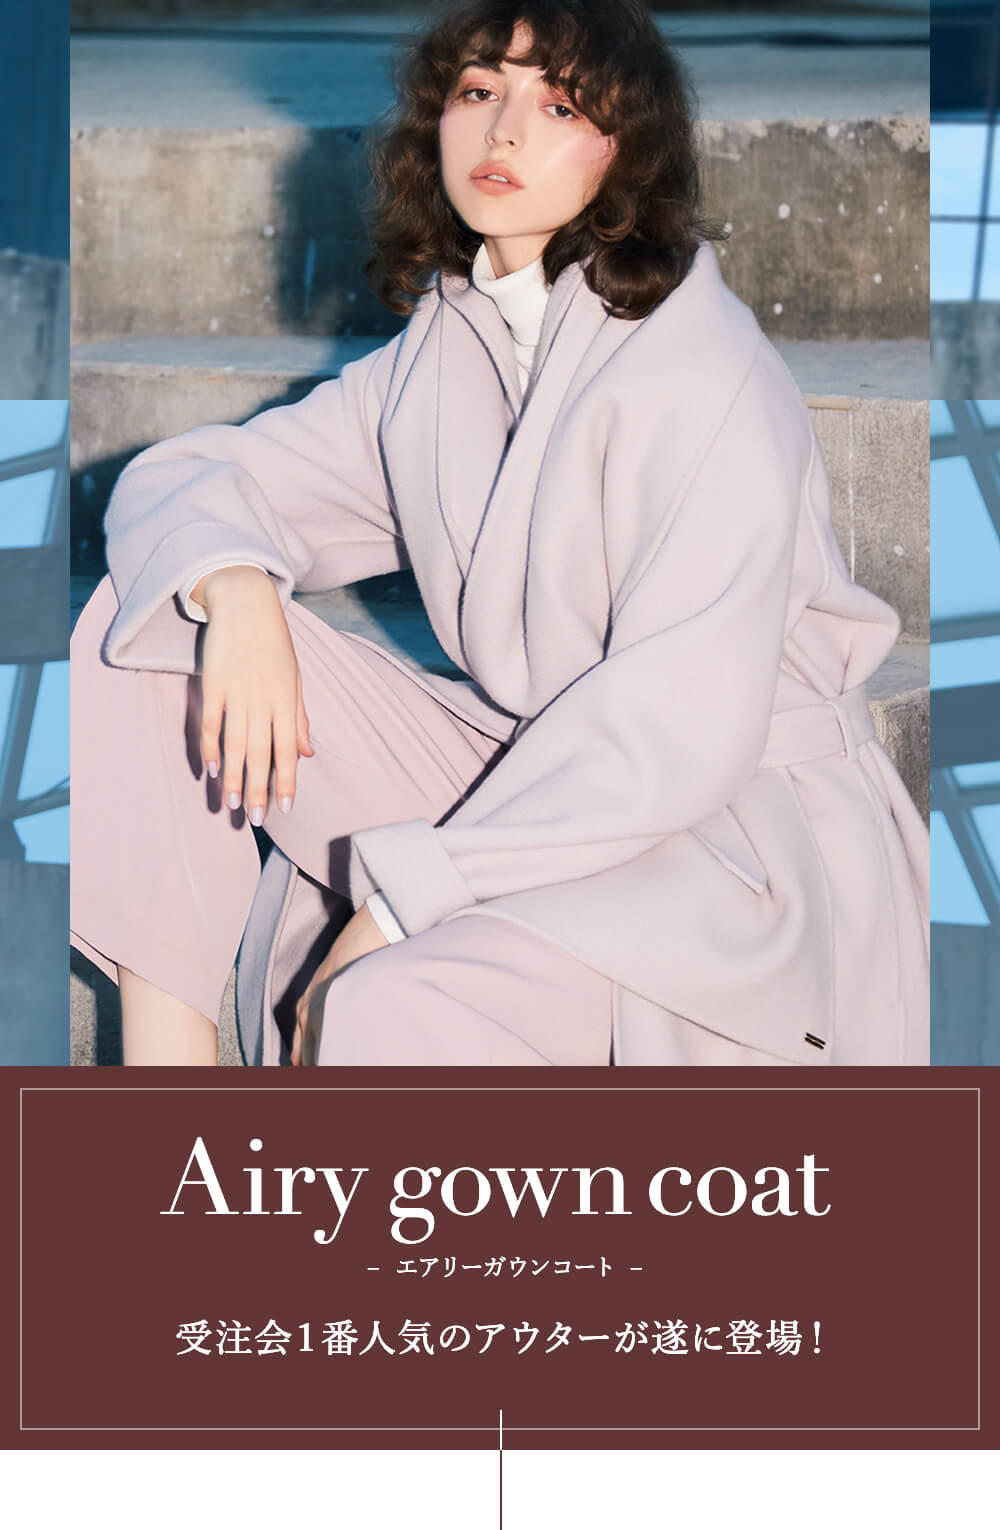 Airy gown coat